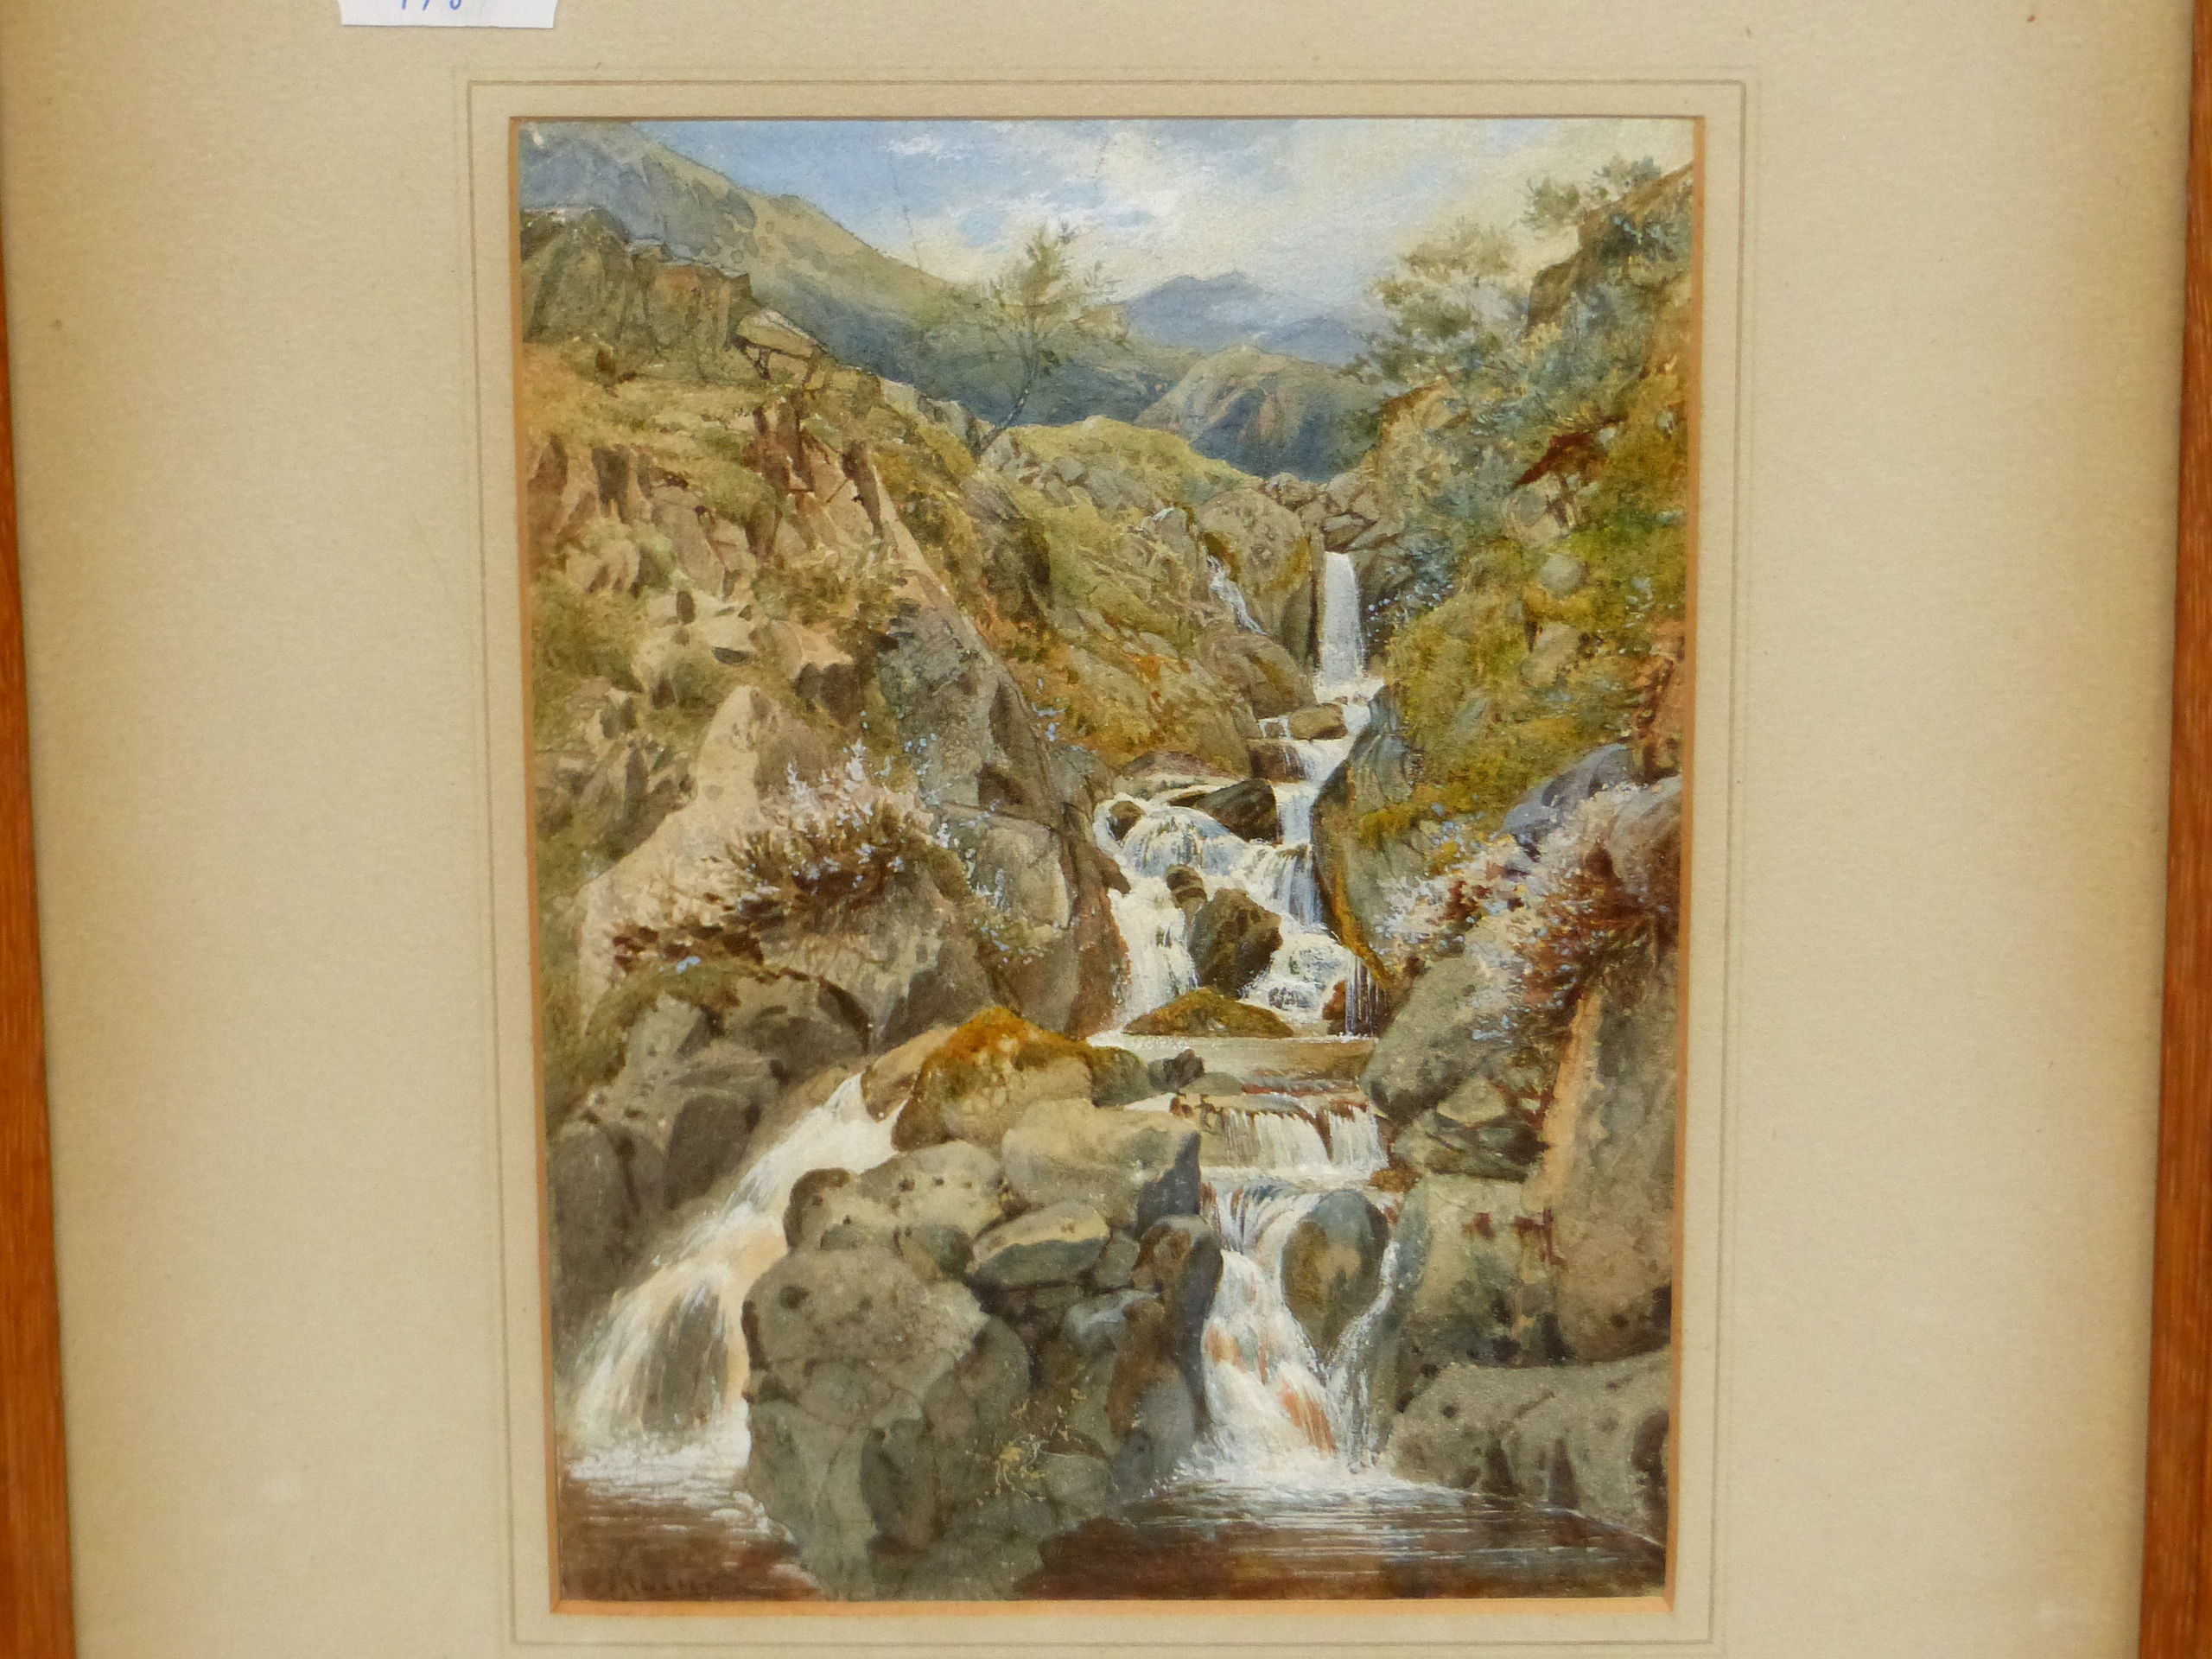 19th/20th C. ENGLISH SCHOOL. A HIGHLAND WATERFALL, SIGNED INDISTINCTLY, WATERCOLOUR 18 x 13cms - Image 6 of 9